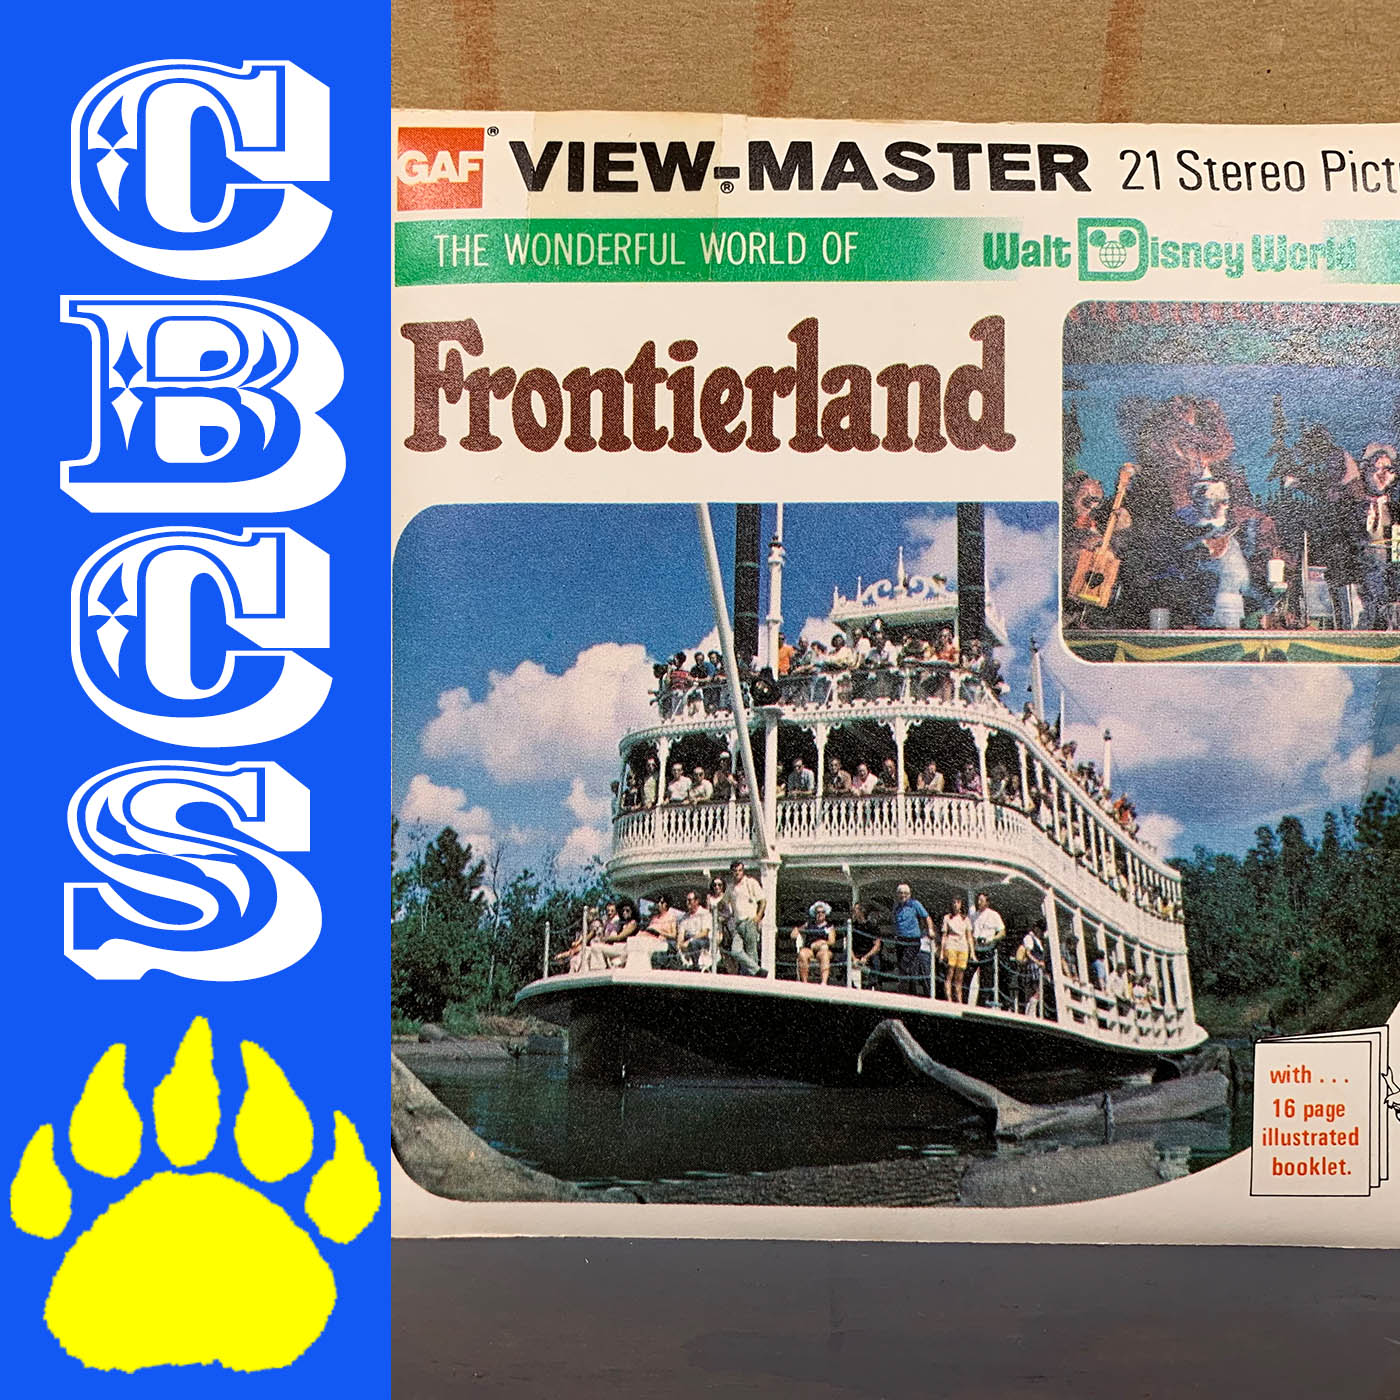 Artwork for 1982 Walt Disney World Frontierland View-Master Reels - Country Bear Collector Show #198